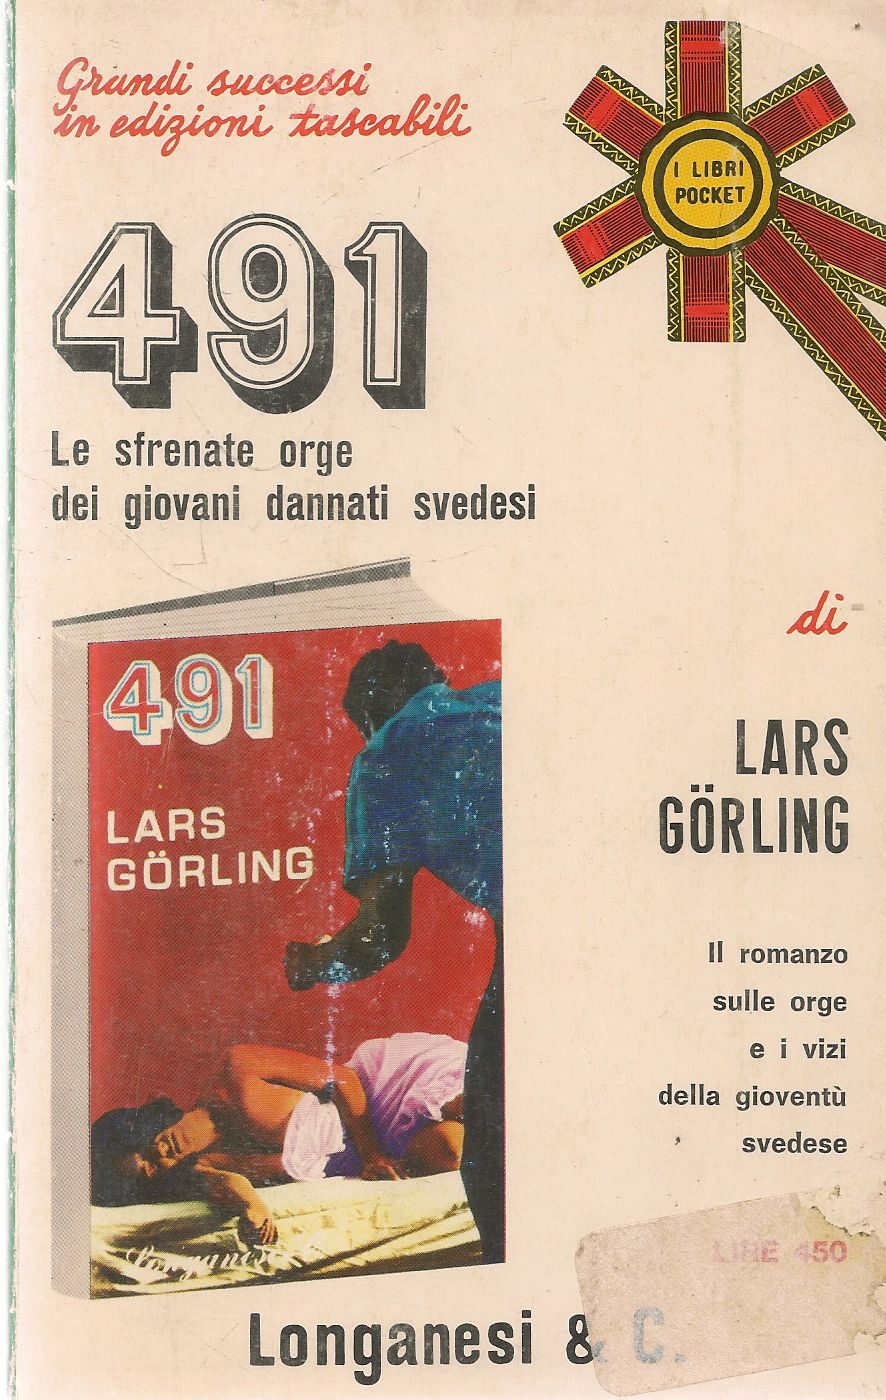 491 - LAERS GORLING